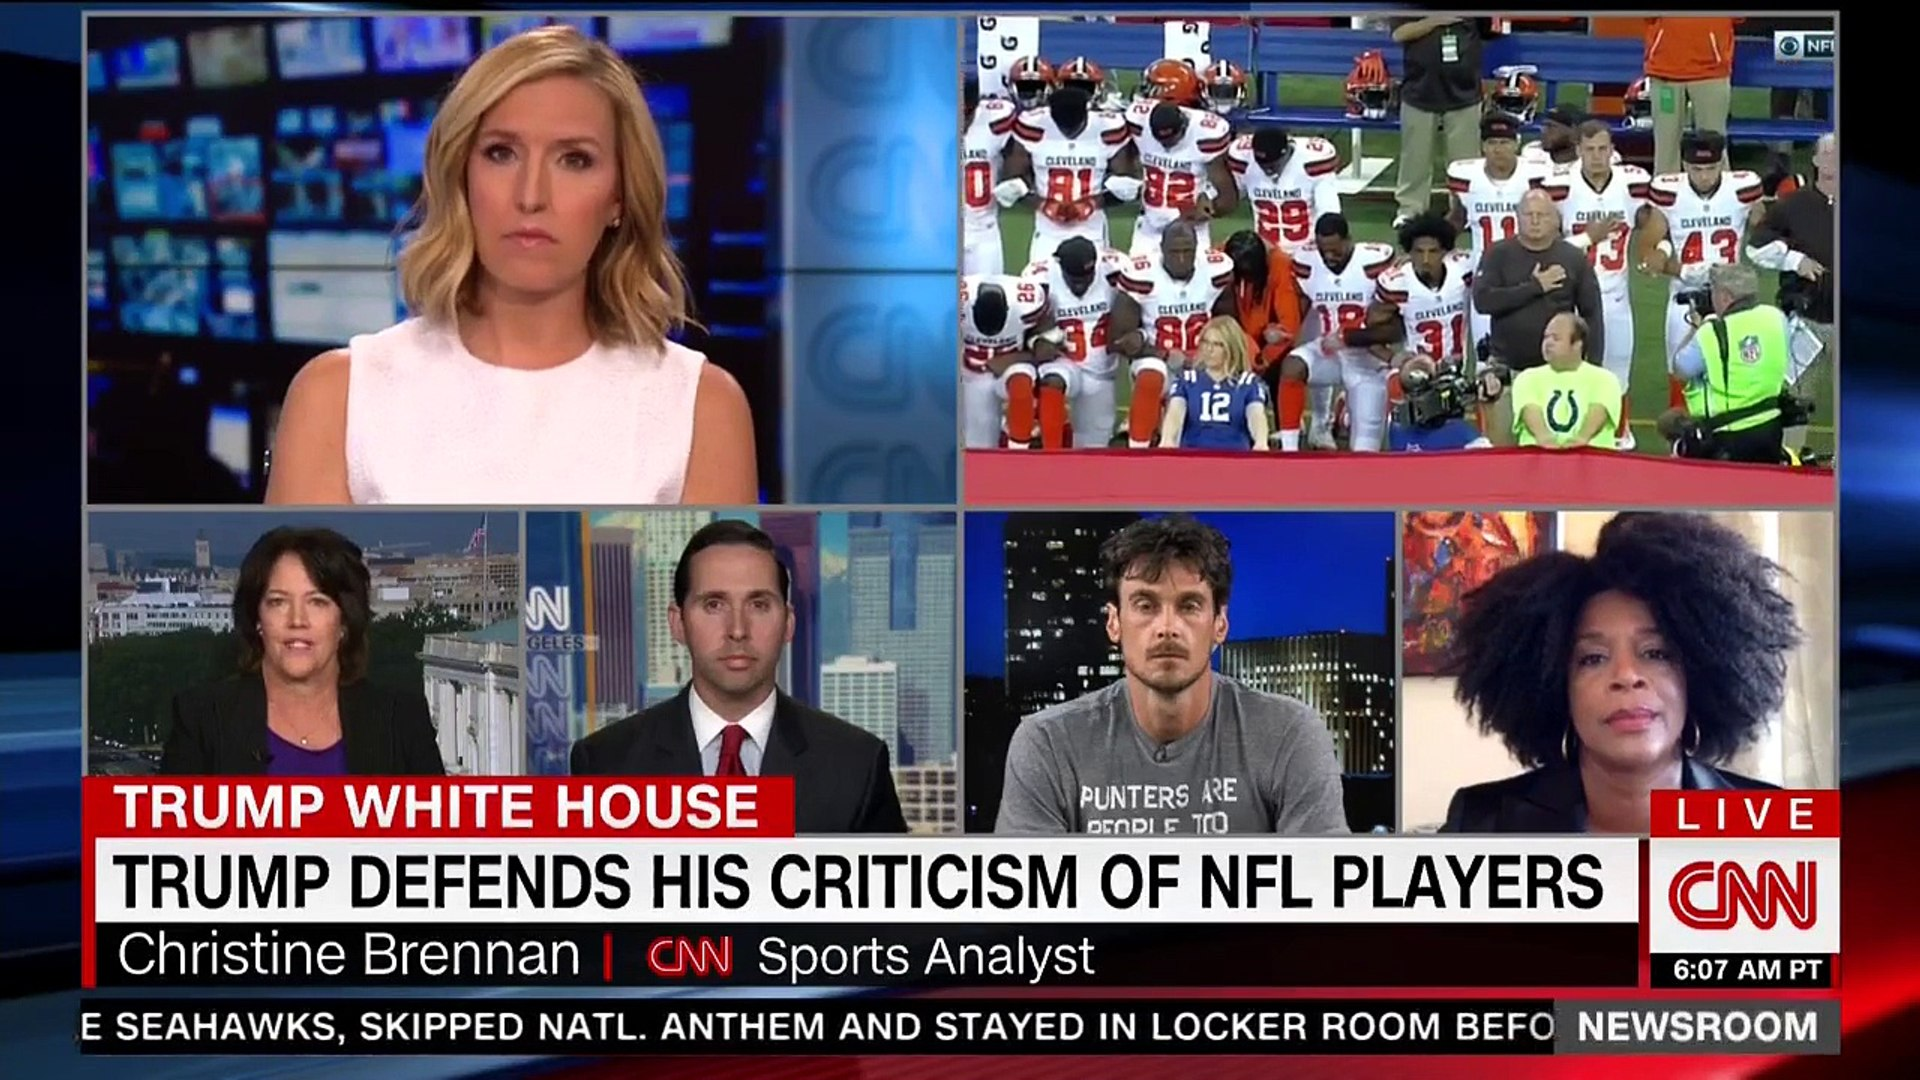 Conservative pundit claims NFL owners only supported black players because they'd 'riot